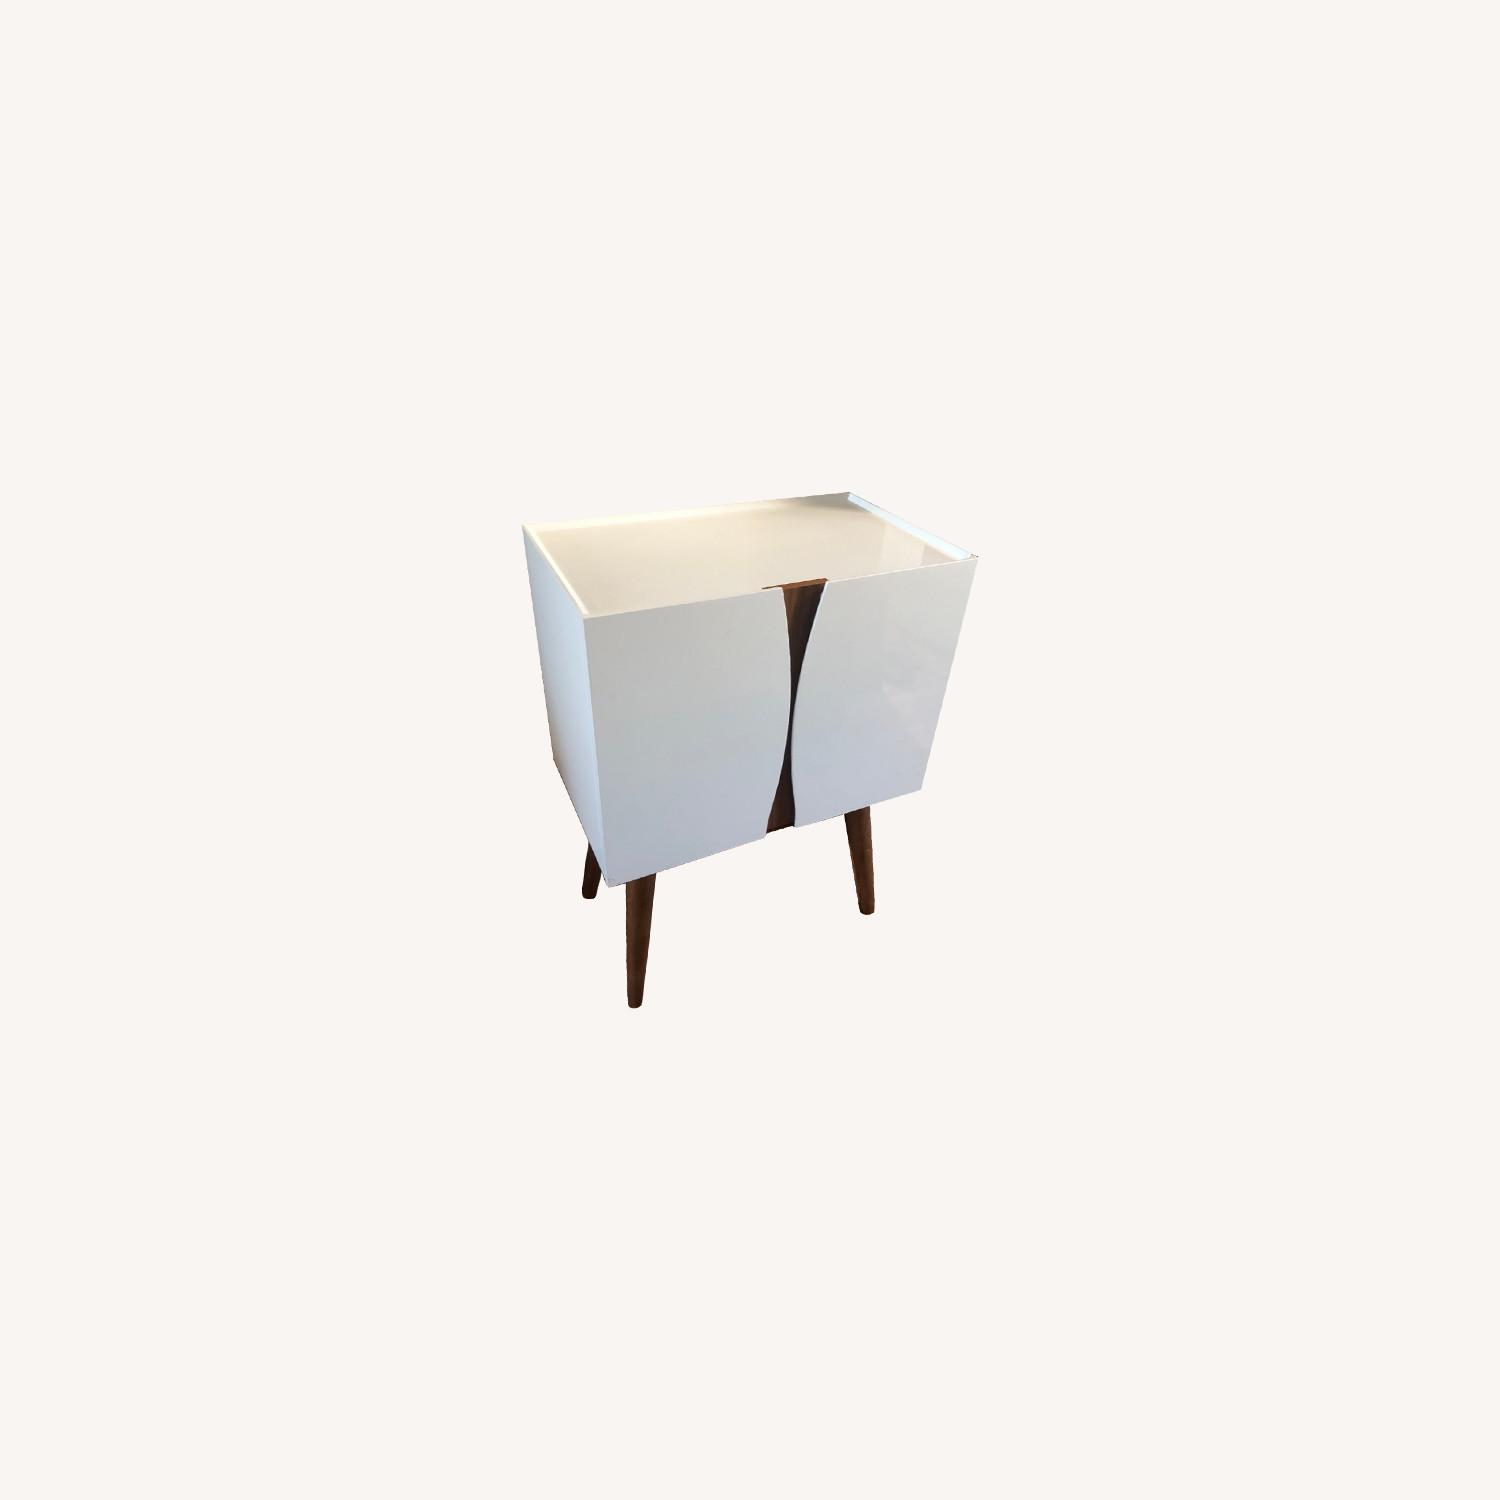 Midcentury Modern White Lacquer and Wood Cabinet - image-0